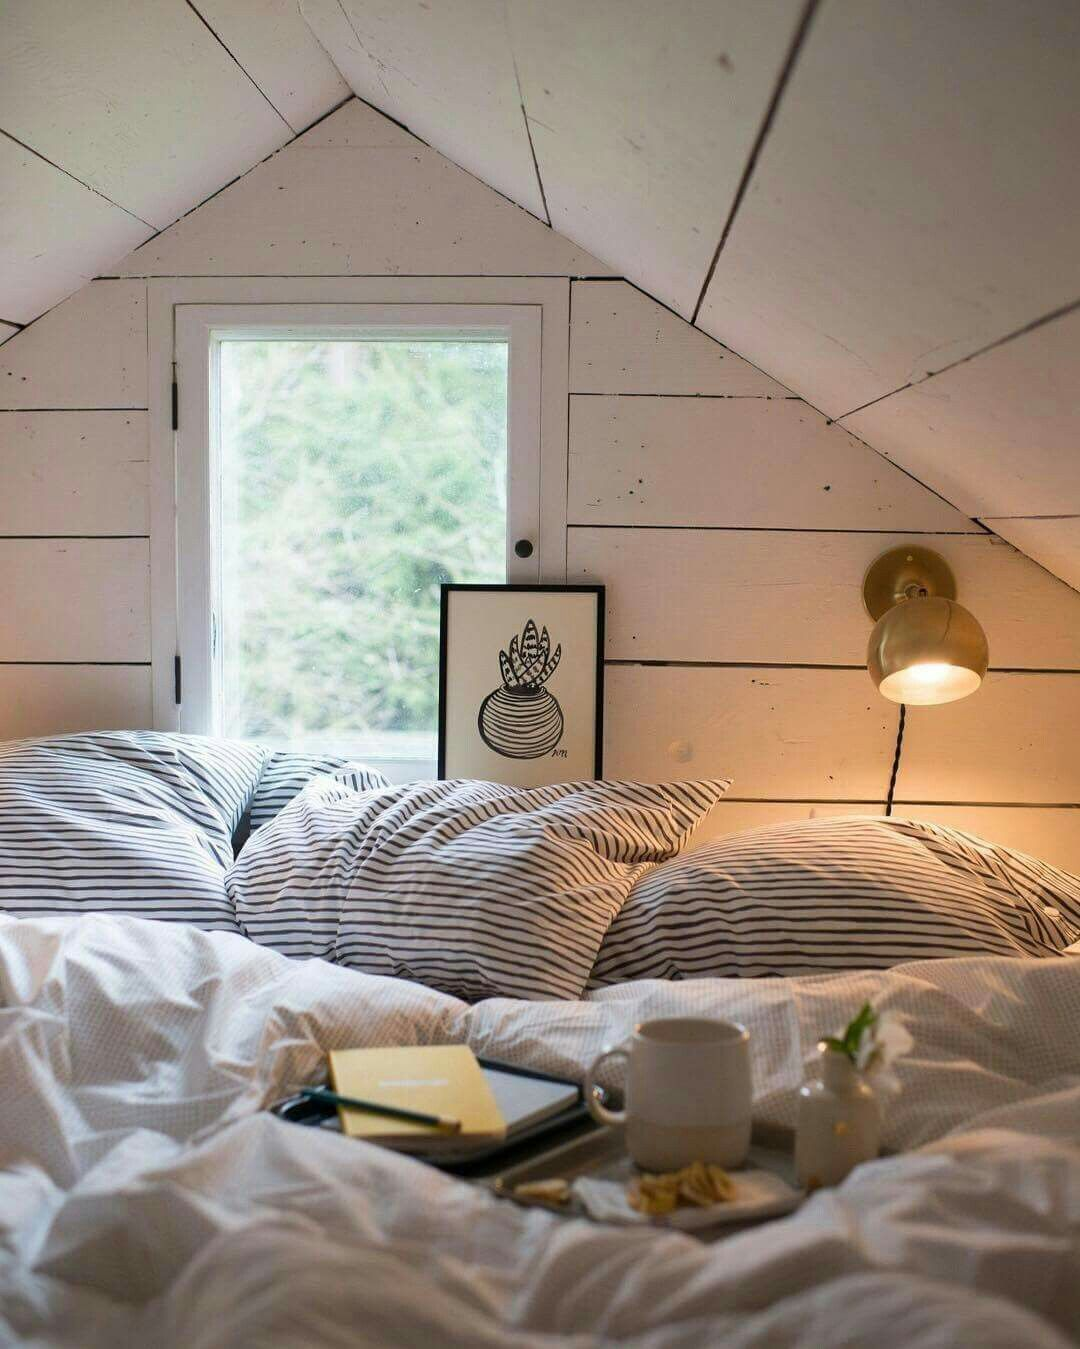 Explore Bunk Rooms, Attic Bedrooms, And More!